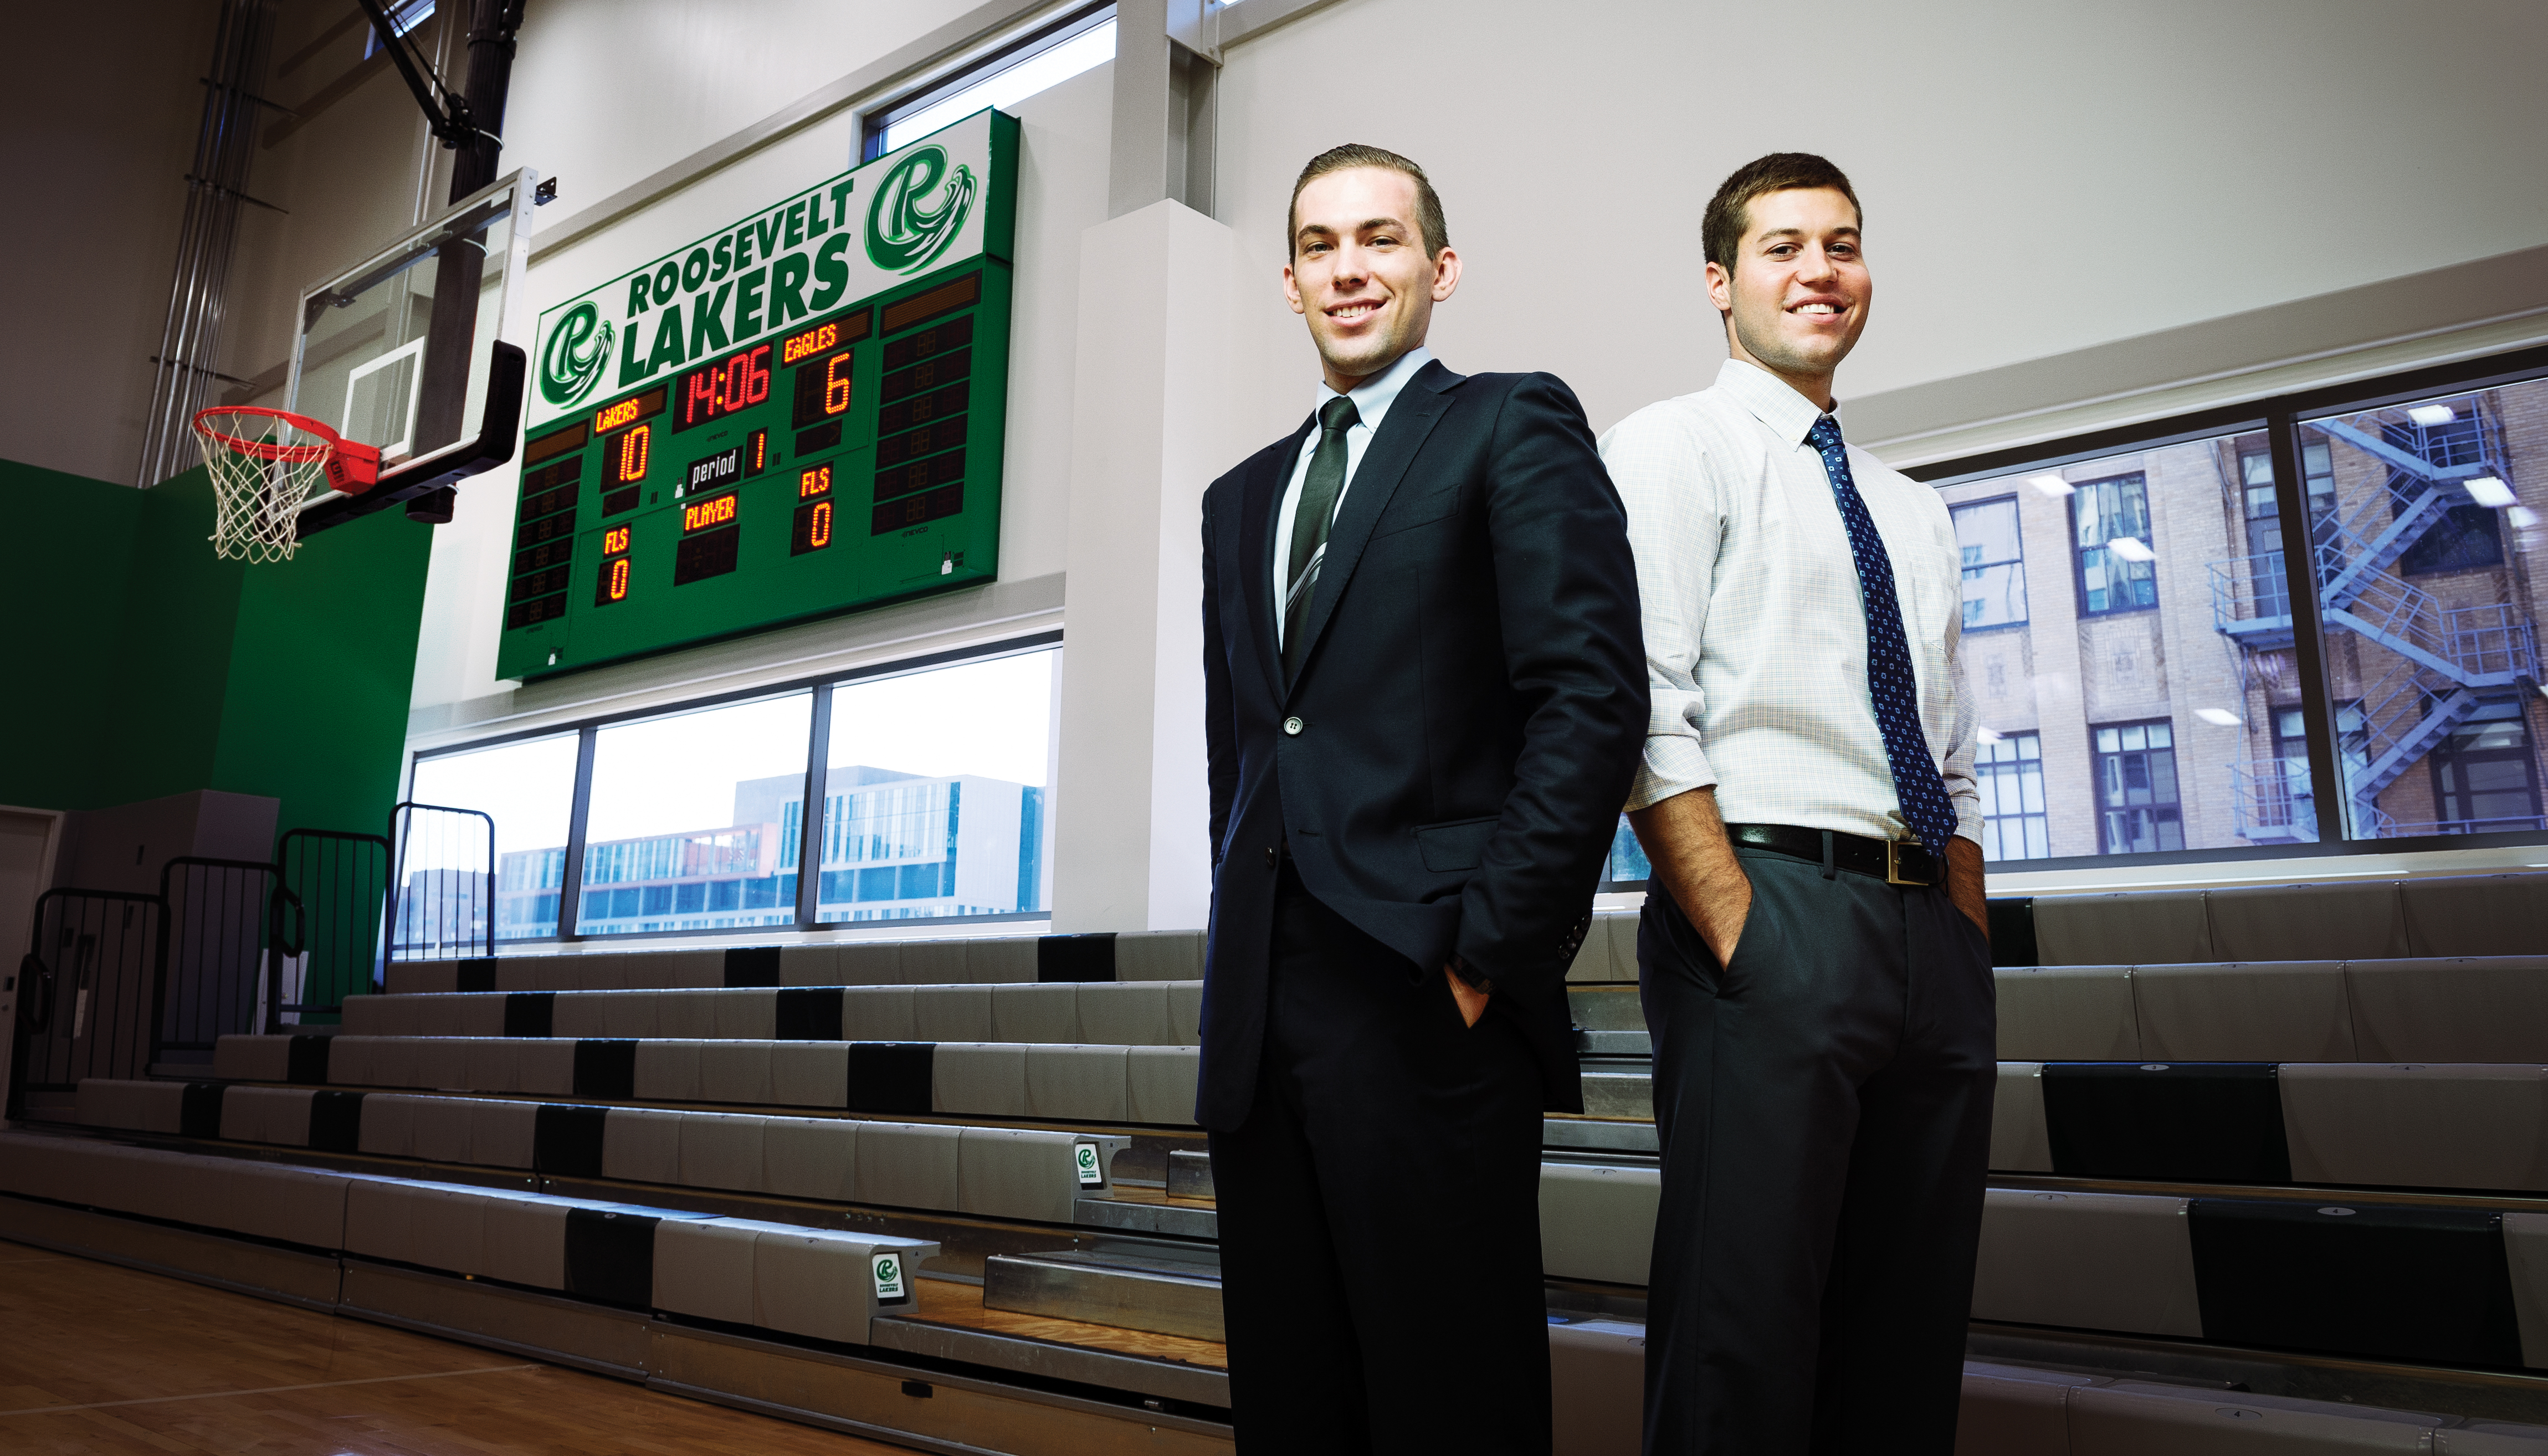 After earning degrees from Roosevelt, former men's basketball teammates Tyler Smith (left) and Mark Tometich are now working in Chicago.